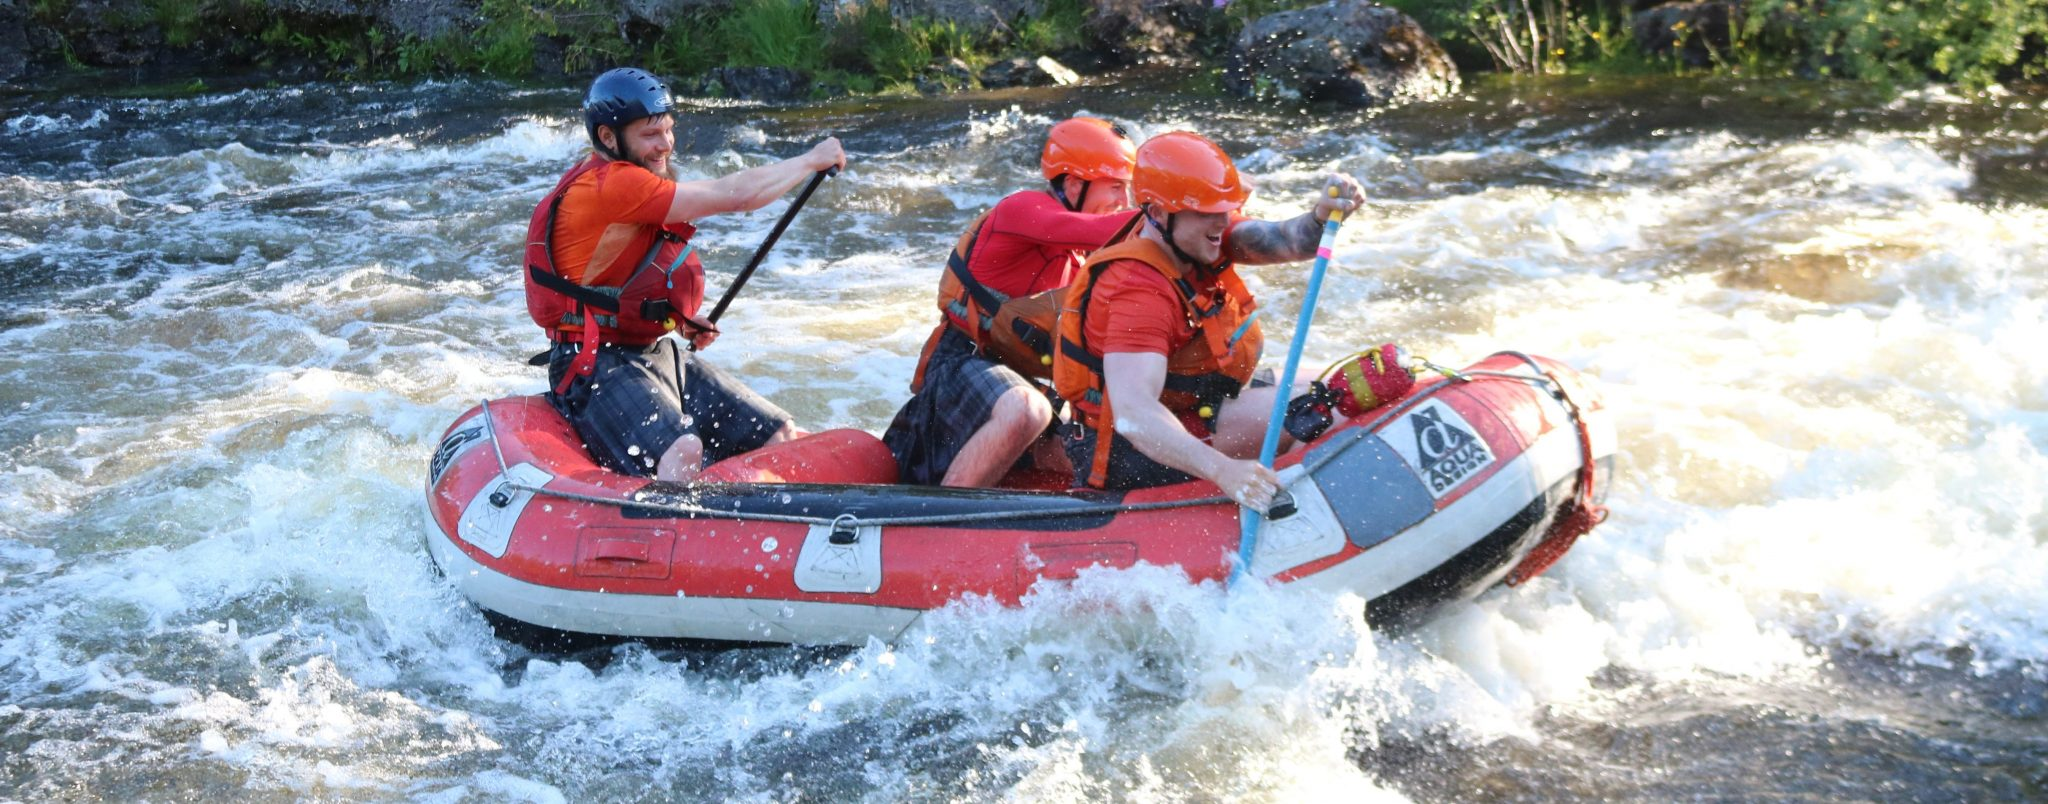 White Water Rafting on the Garry